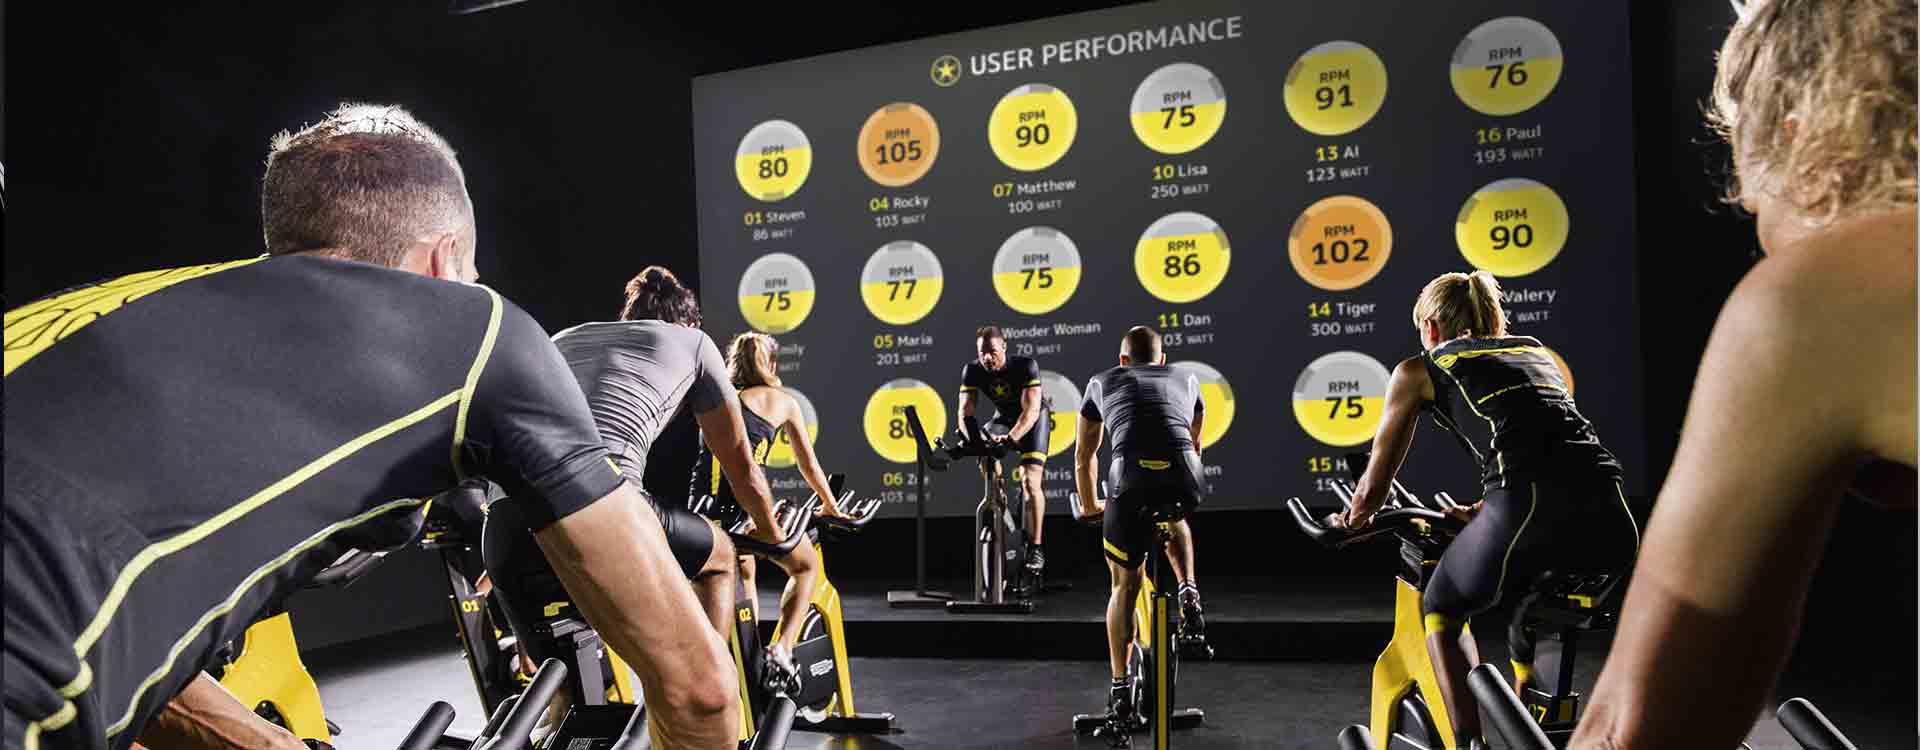 Indoor Group Cycling - A premium workout Experience